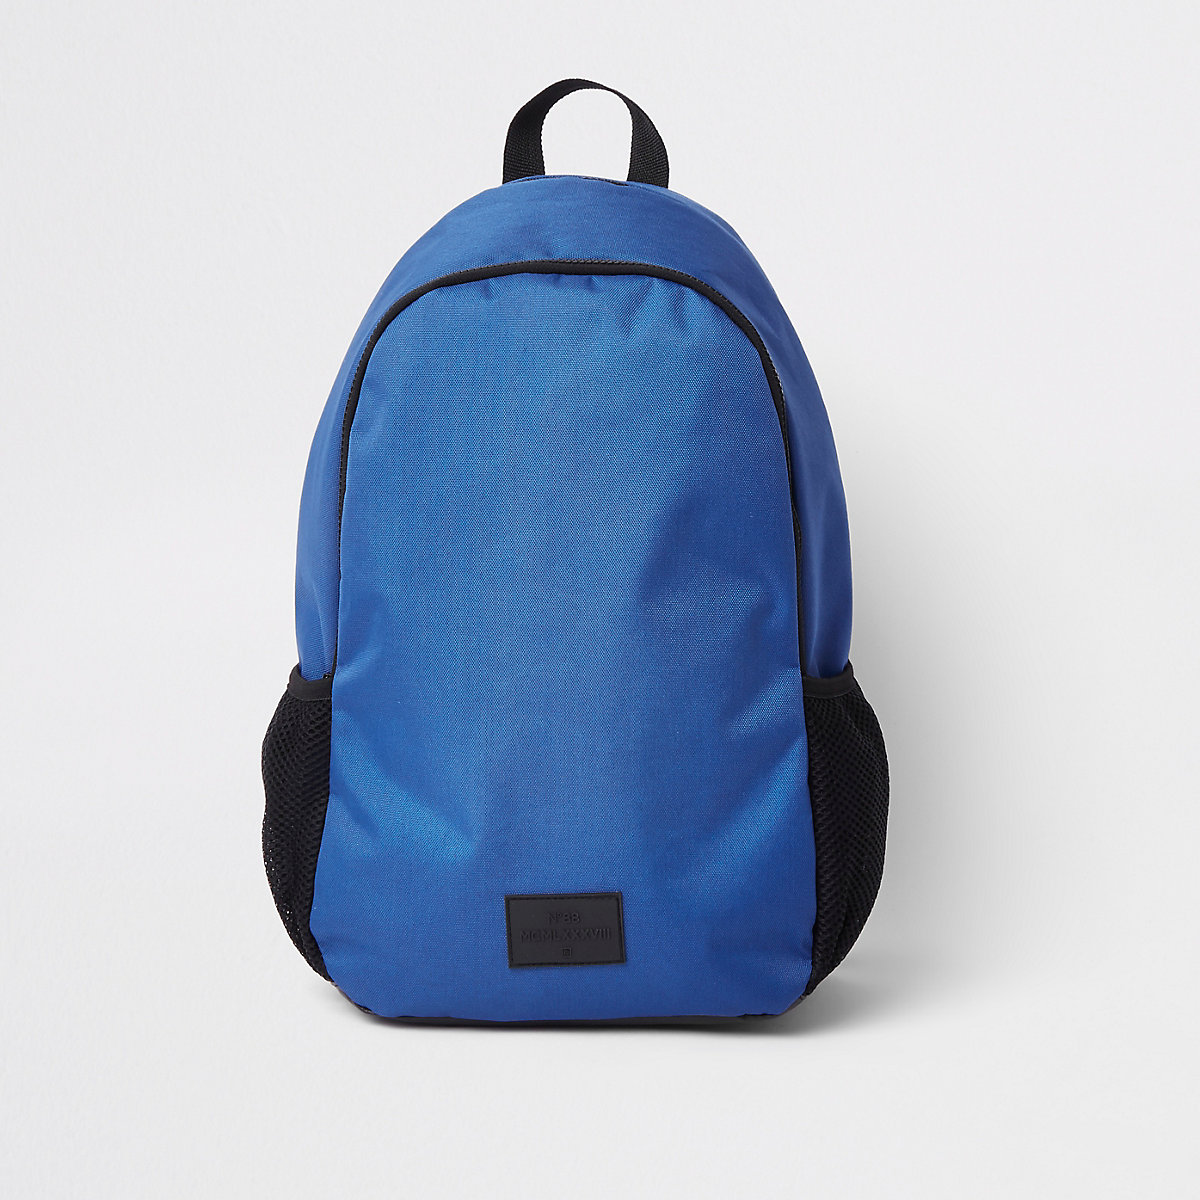 Blue double zip compartment rucksack